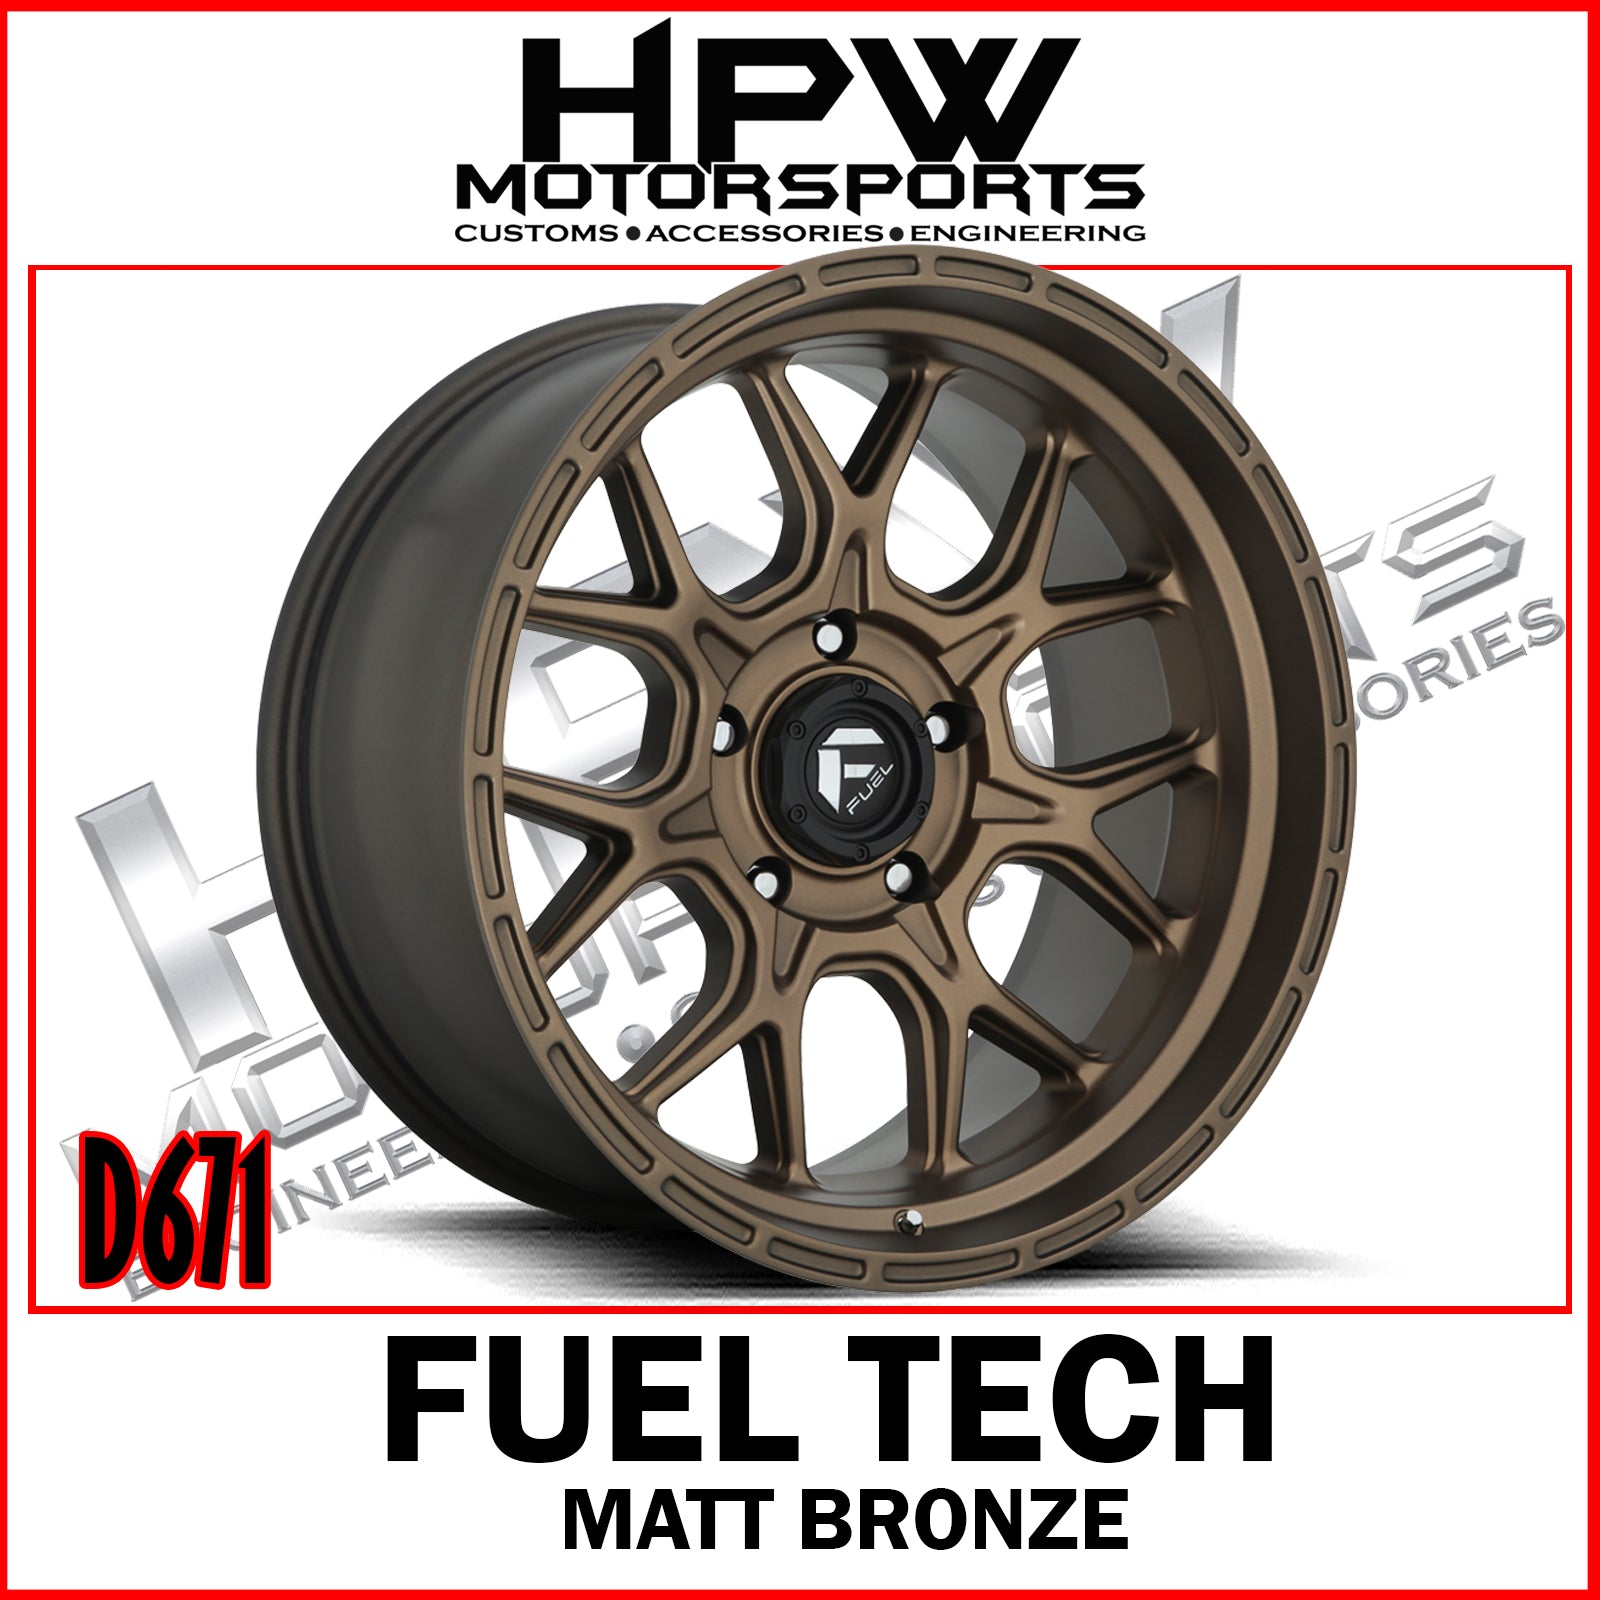 (20x10 -18) D671 FUEL TECH MATT BRONZE - Set of 4